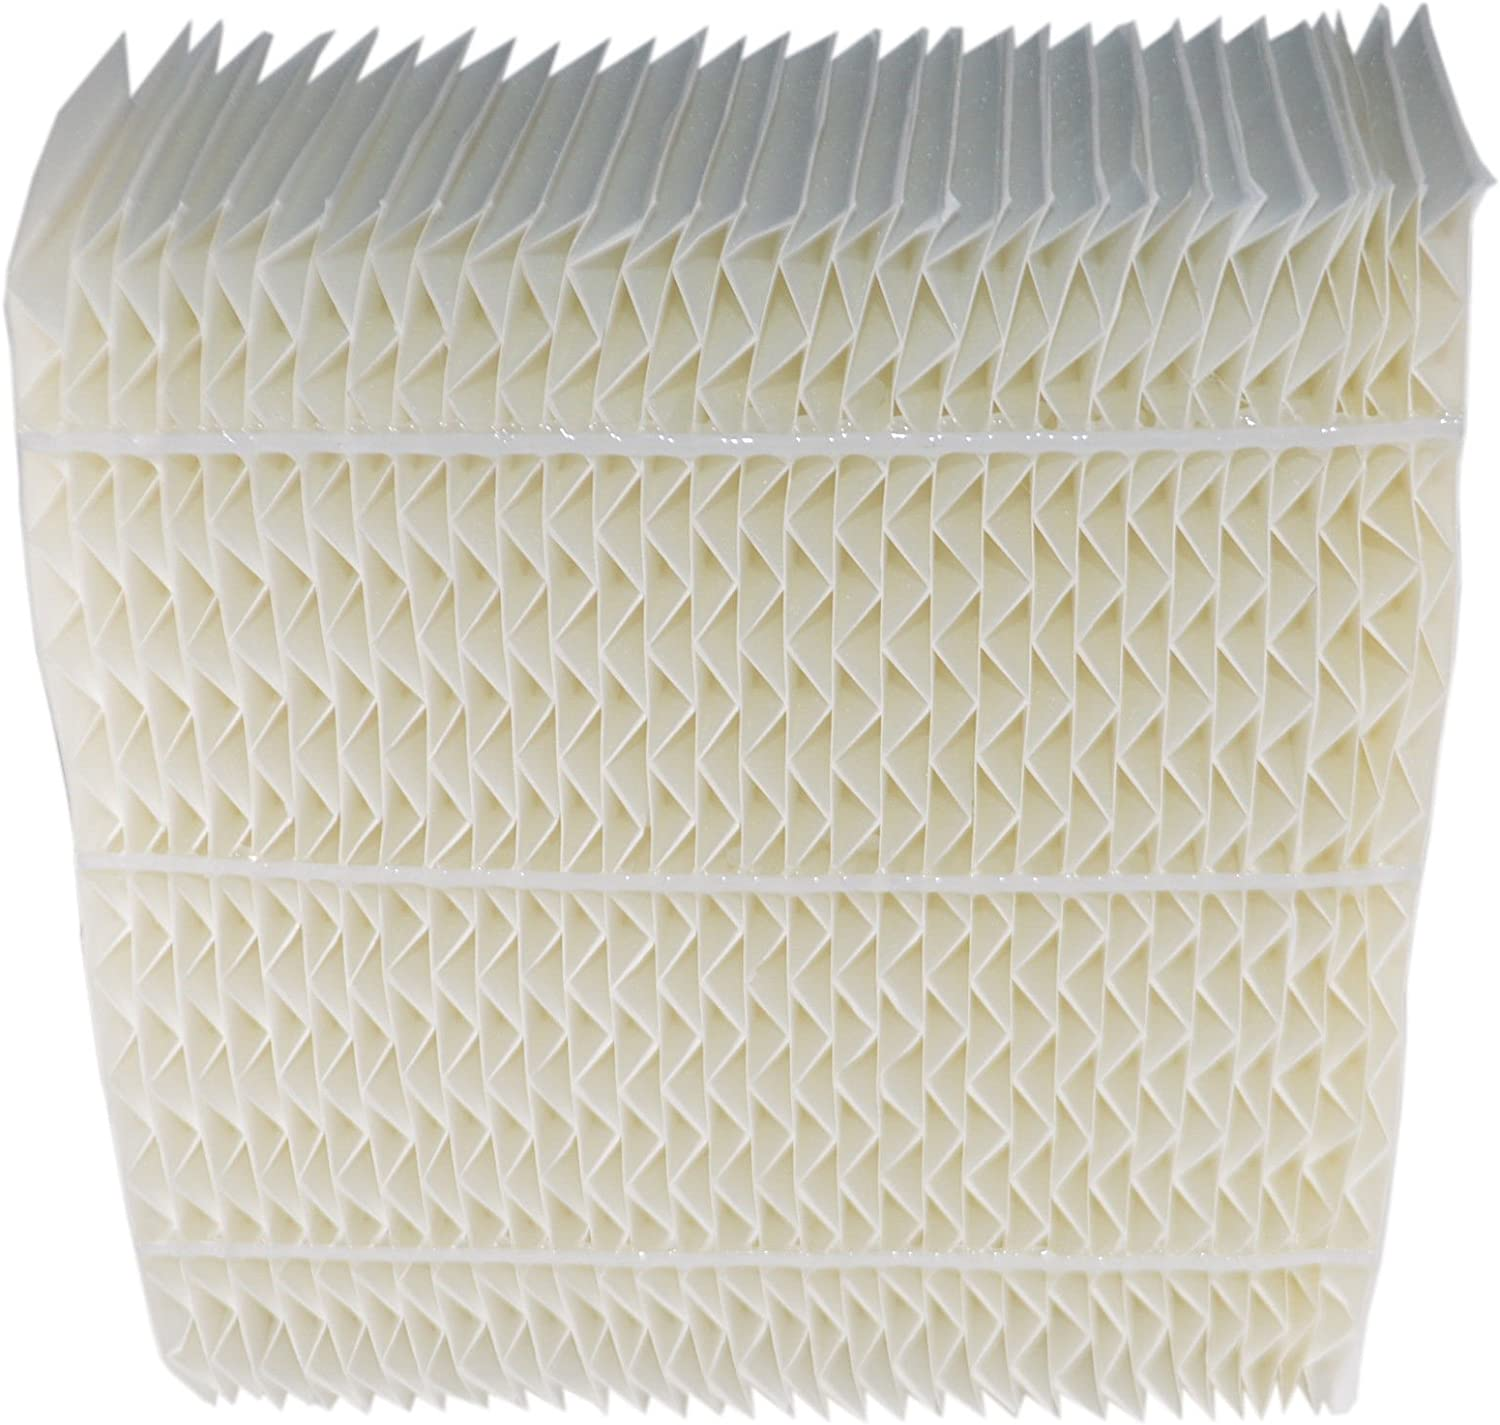 ANTOBLE 1043 Humidifier Super Wick Chicago Mall Replacement Filter for Direct sale of manufacturer Essick